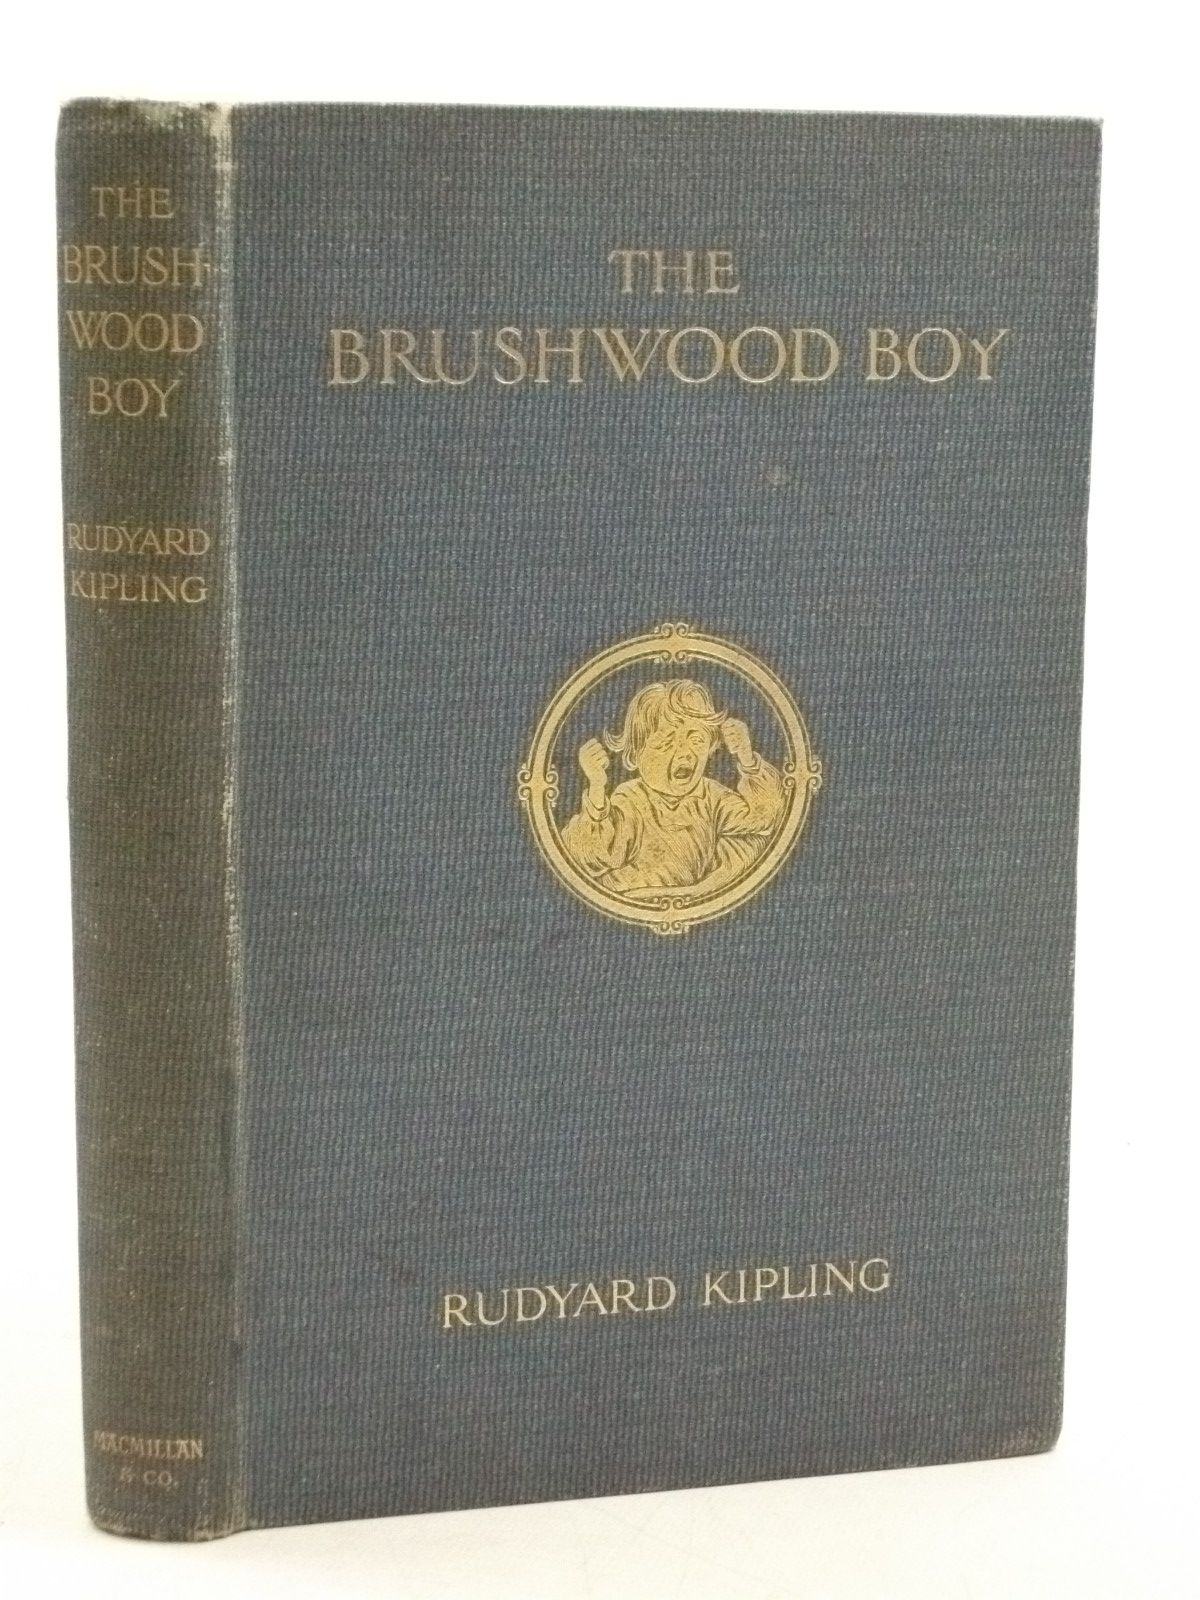 Photo of THE BRUSHWOOD BOY written by Kipling, Rudyard illustrated by Townsend, F.H. published by Macmillan & Co. Ltd. (STOCK CODE: 1604603)  for sale by Stella & Rose's Books